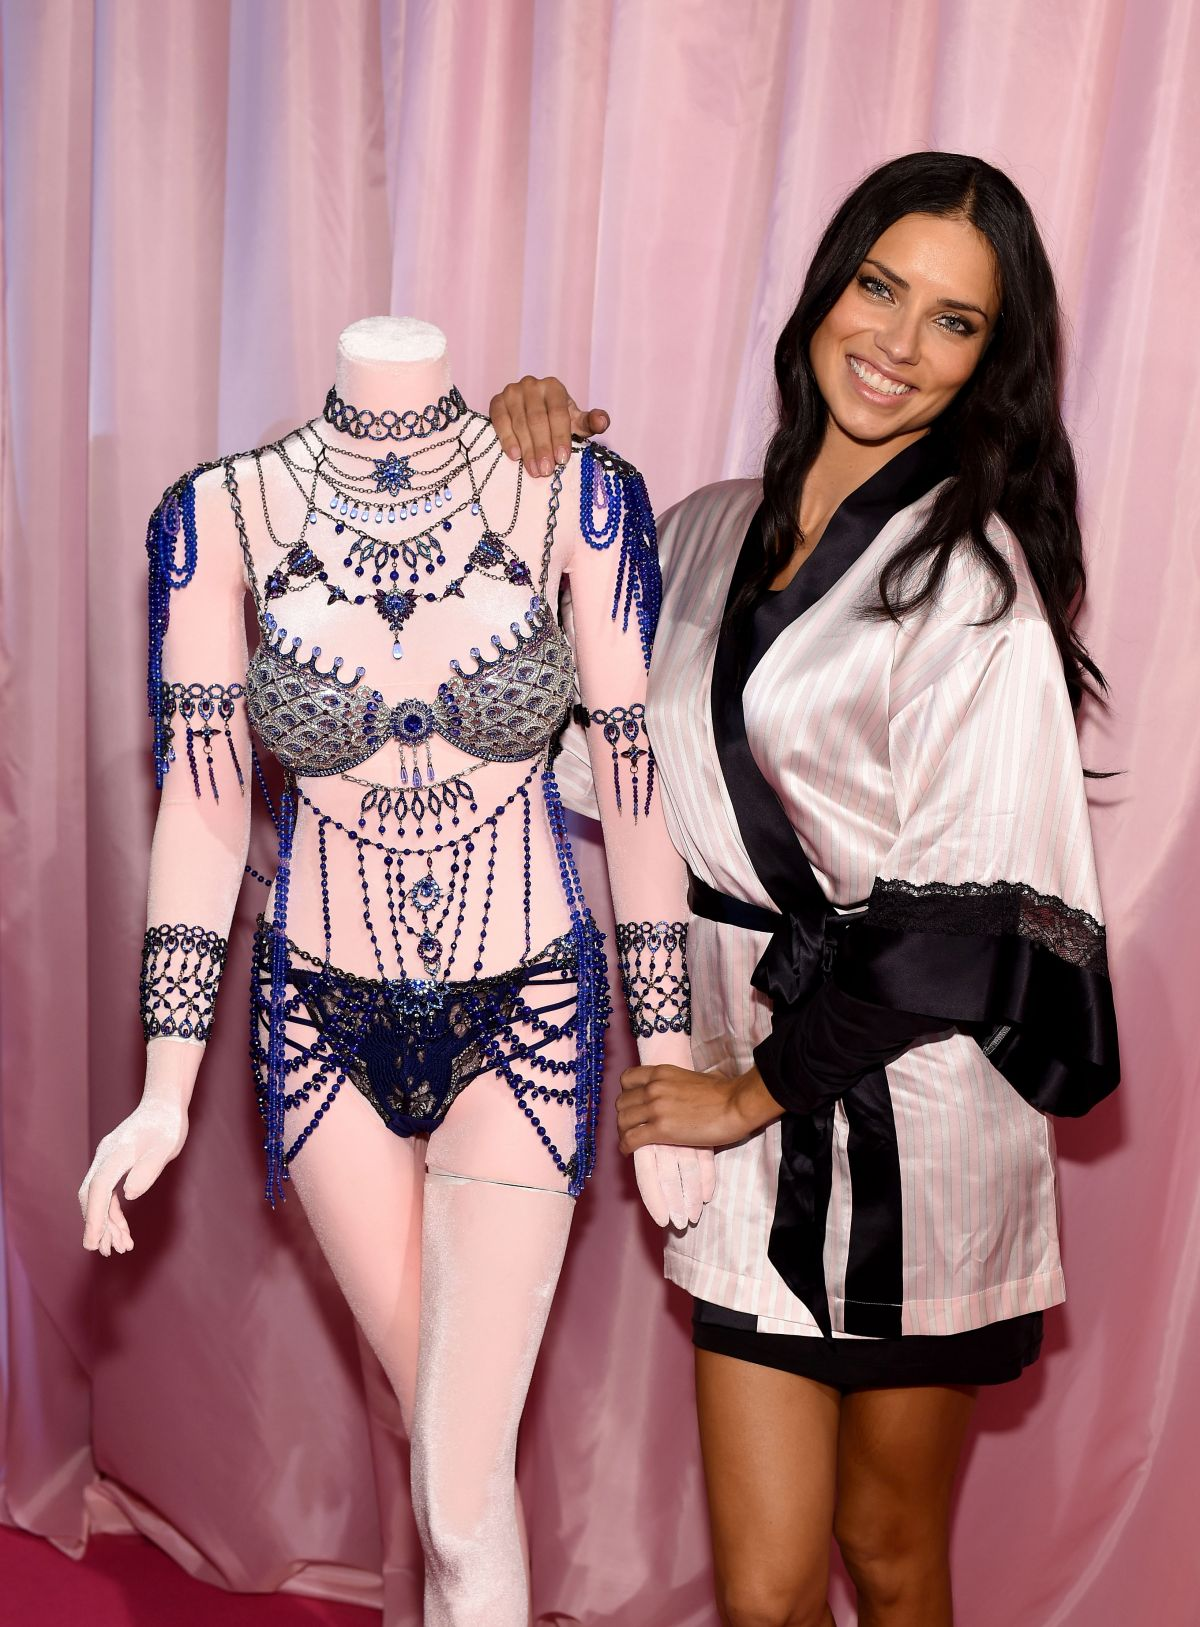 Adriana lima hairstyles 2014 - Adriana Lima At 2014 Victoria S Secret Fashion Show Hair And Makeup